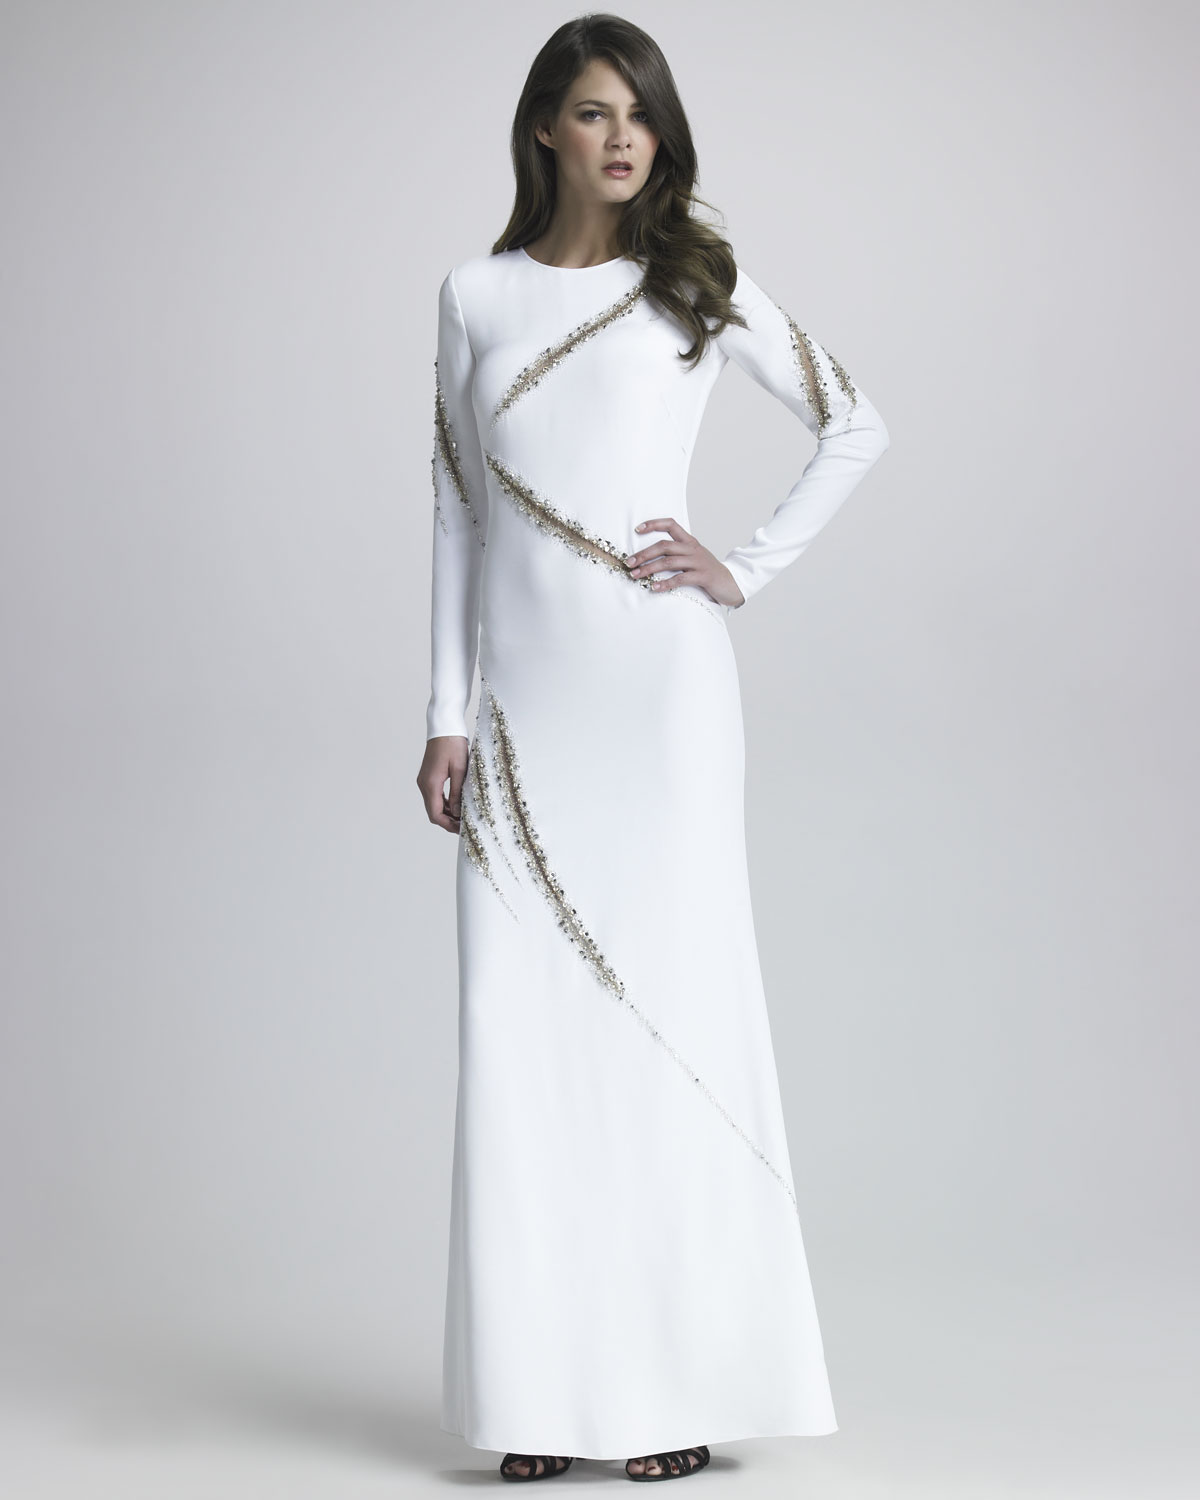 c9fbfbe72836 Lyst - Emilio Pucci Beaded Long Sleeve Gown in White